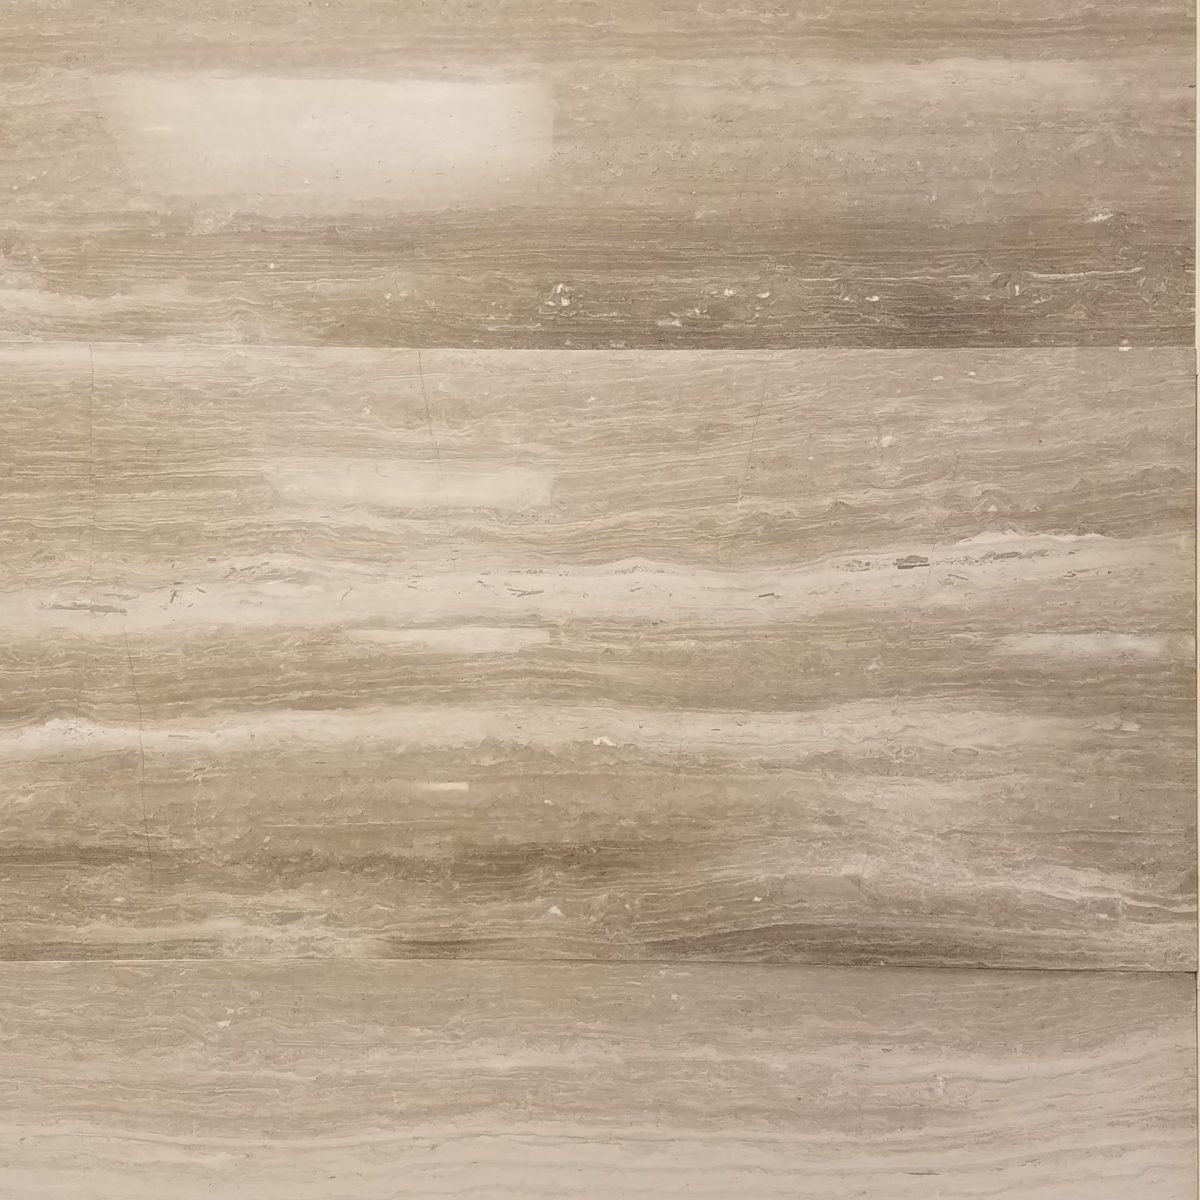 Wooden Gray Polished Marble Tile Travertine Pavers